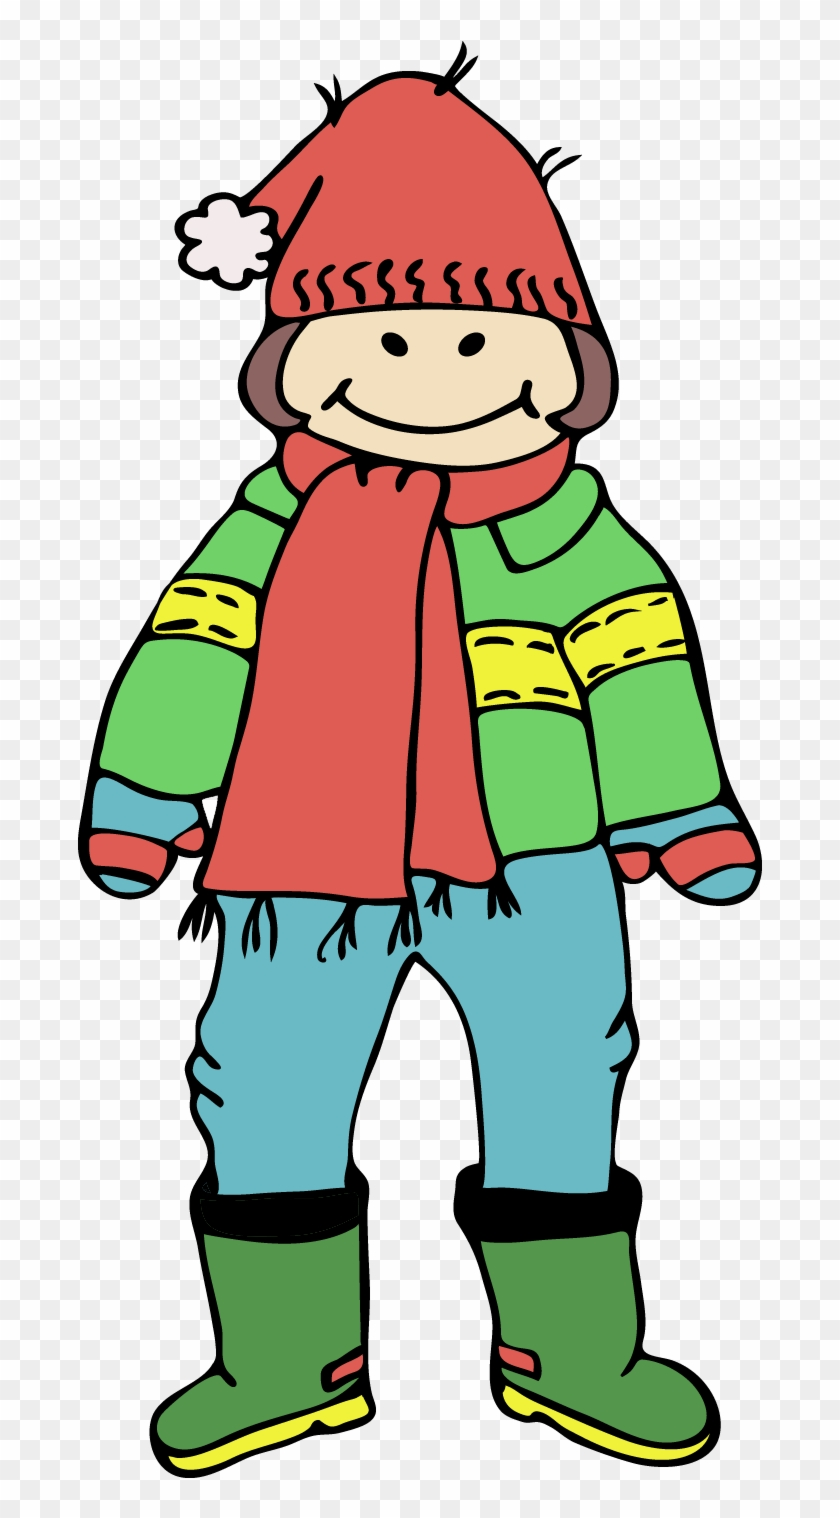 Boy Clipart Winter Clothes - Wearing Jacket Clipart #24209